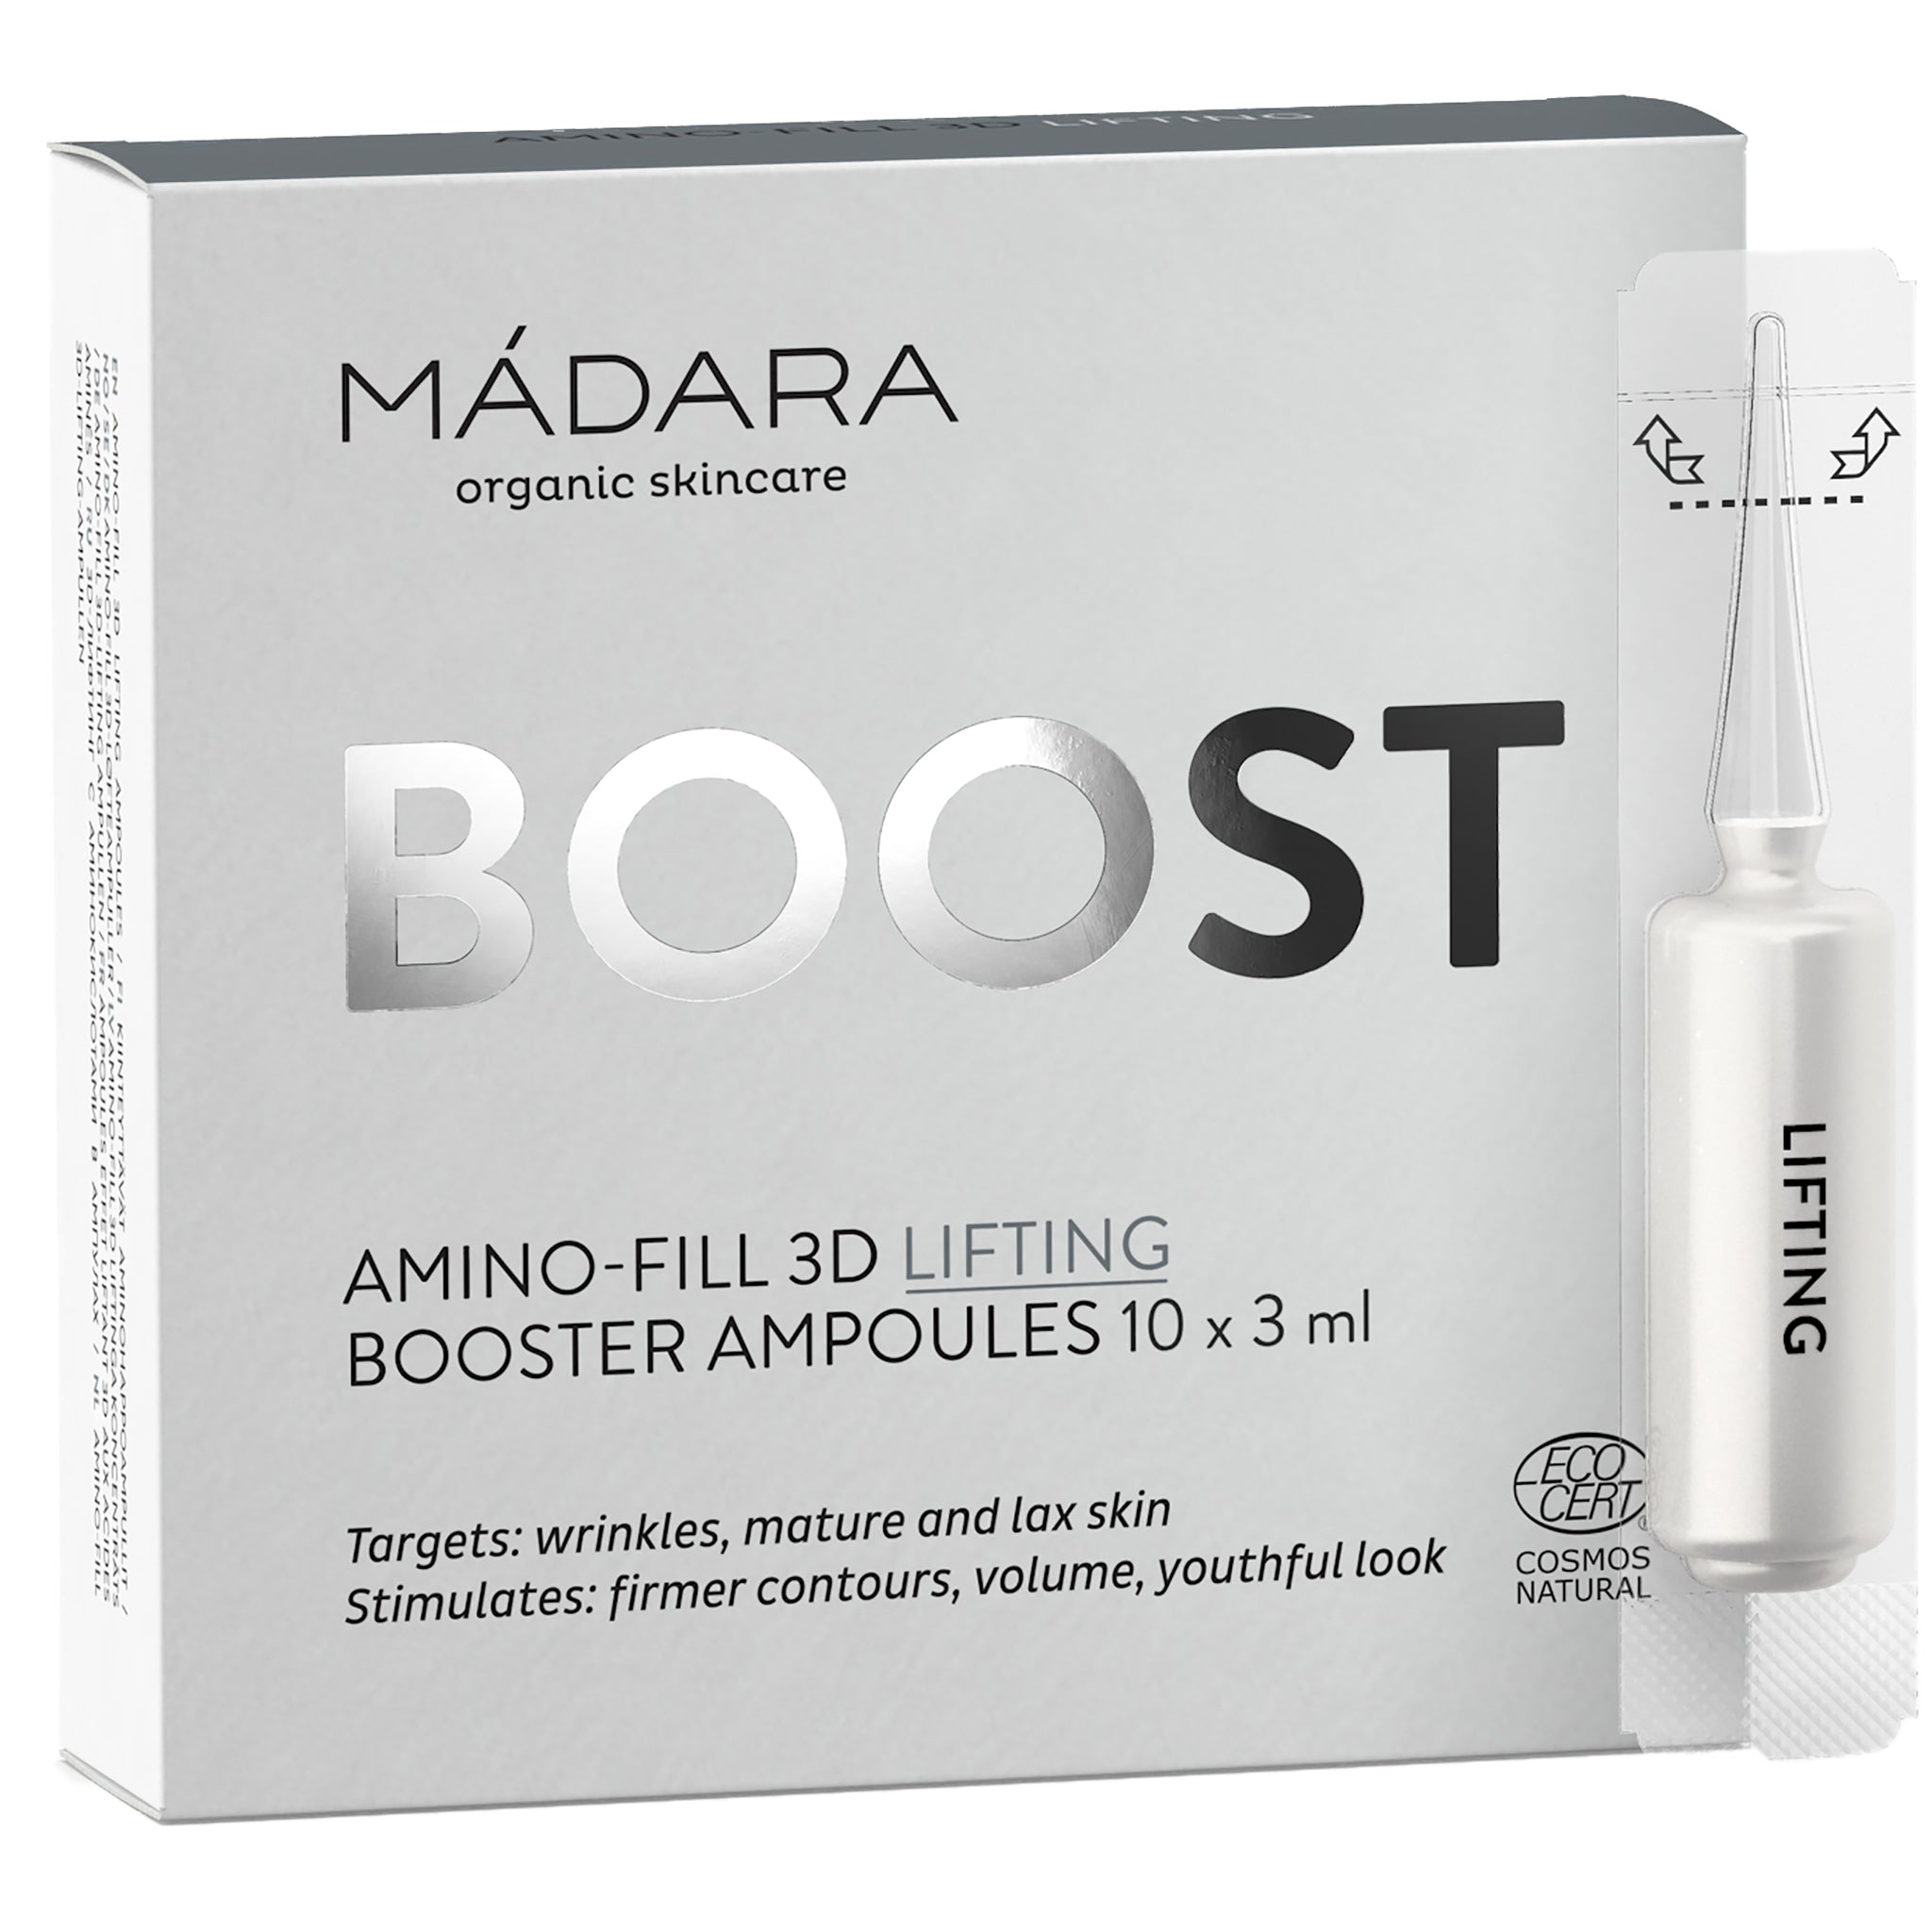 Amino-Fill 3D lifting Booster Ampoules (PRODUCT EXPIRY END Nov 2020)